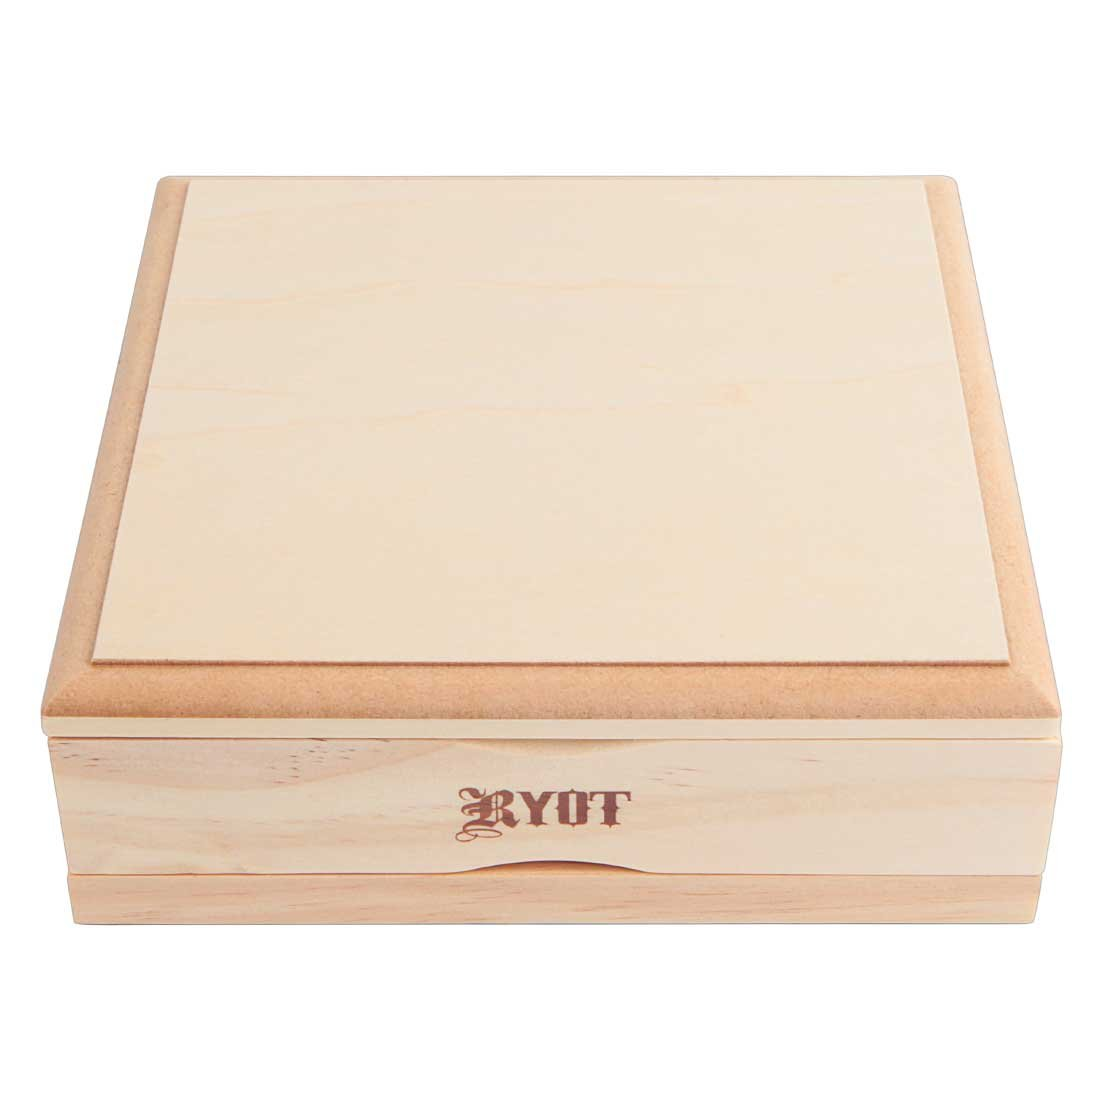 RYOT 7x7 Solid Top Screen Box in Natural | Wide Wooden Box Perfect for Sifter - Monofilament Mesh Screen - Glass Base Tray - Prep Card - Storage Divider by RYOT